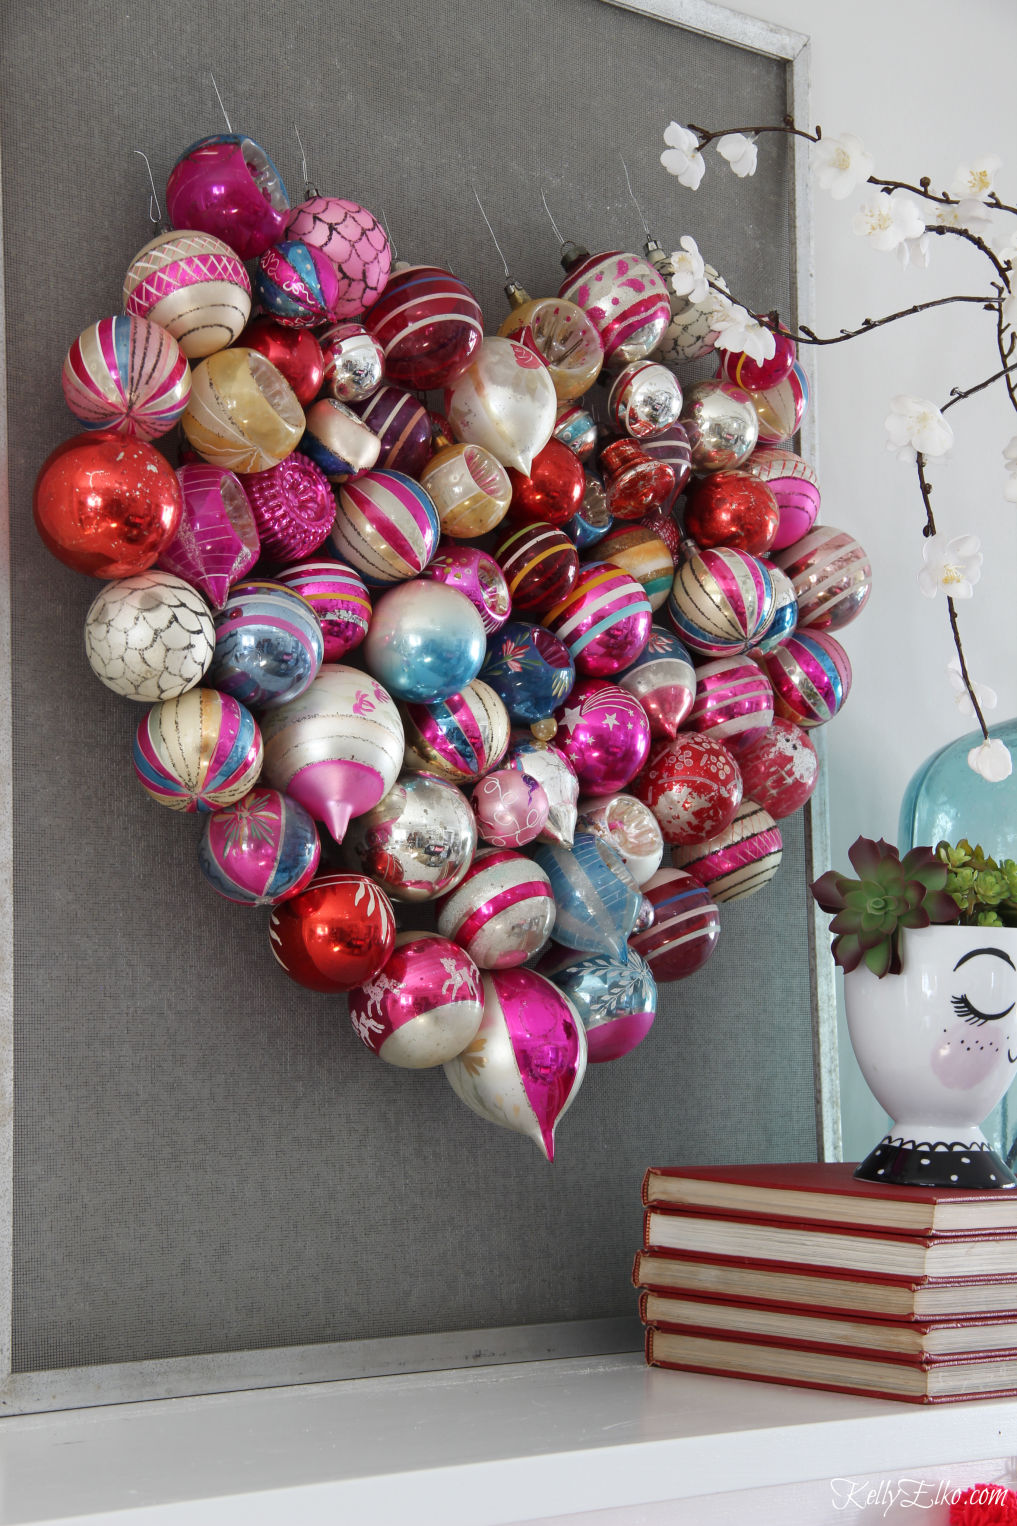 How to make a Christmas ornament Valentine heart screen kellyelko.com #valentines #valentinecraft #valentinesday #christmasornaments #vintageornaments #shinybrites #valentinedecor #valentinesdaydecor #valentinesparty #hearts #diycrafts